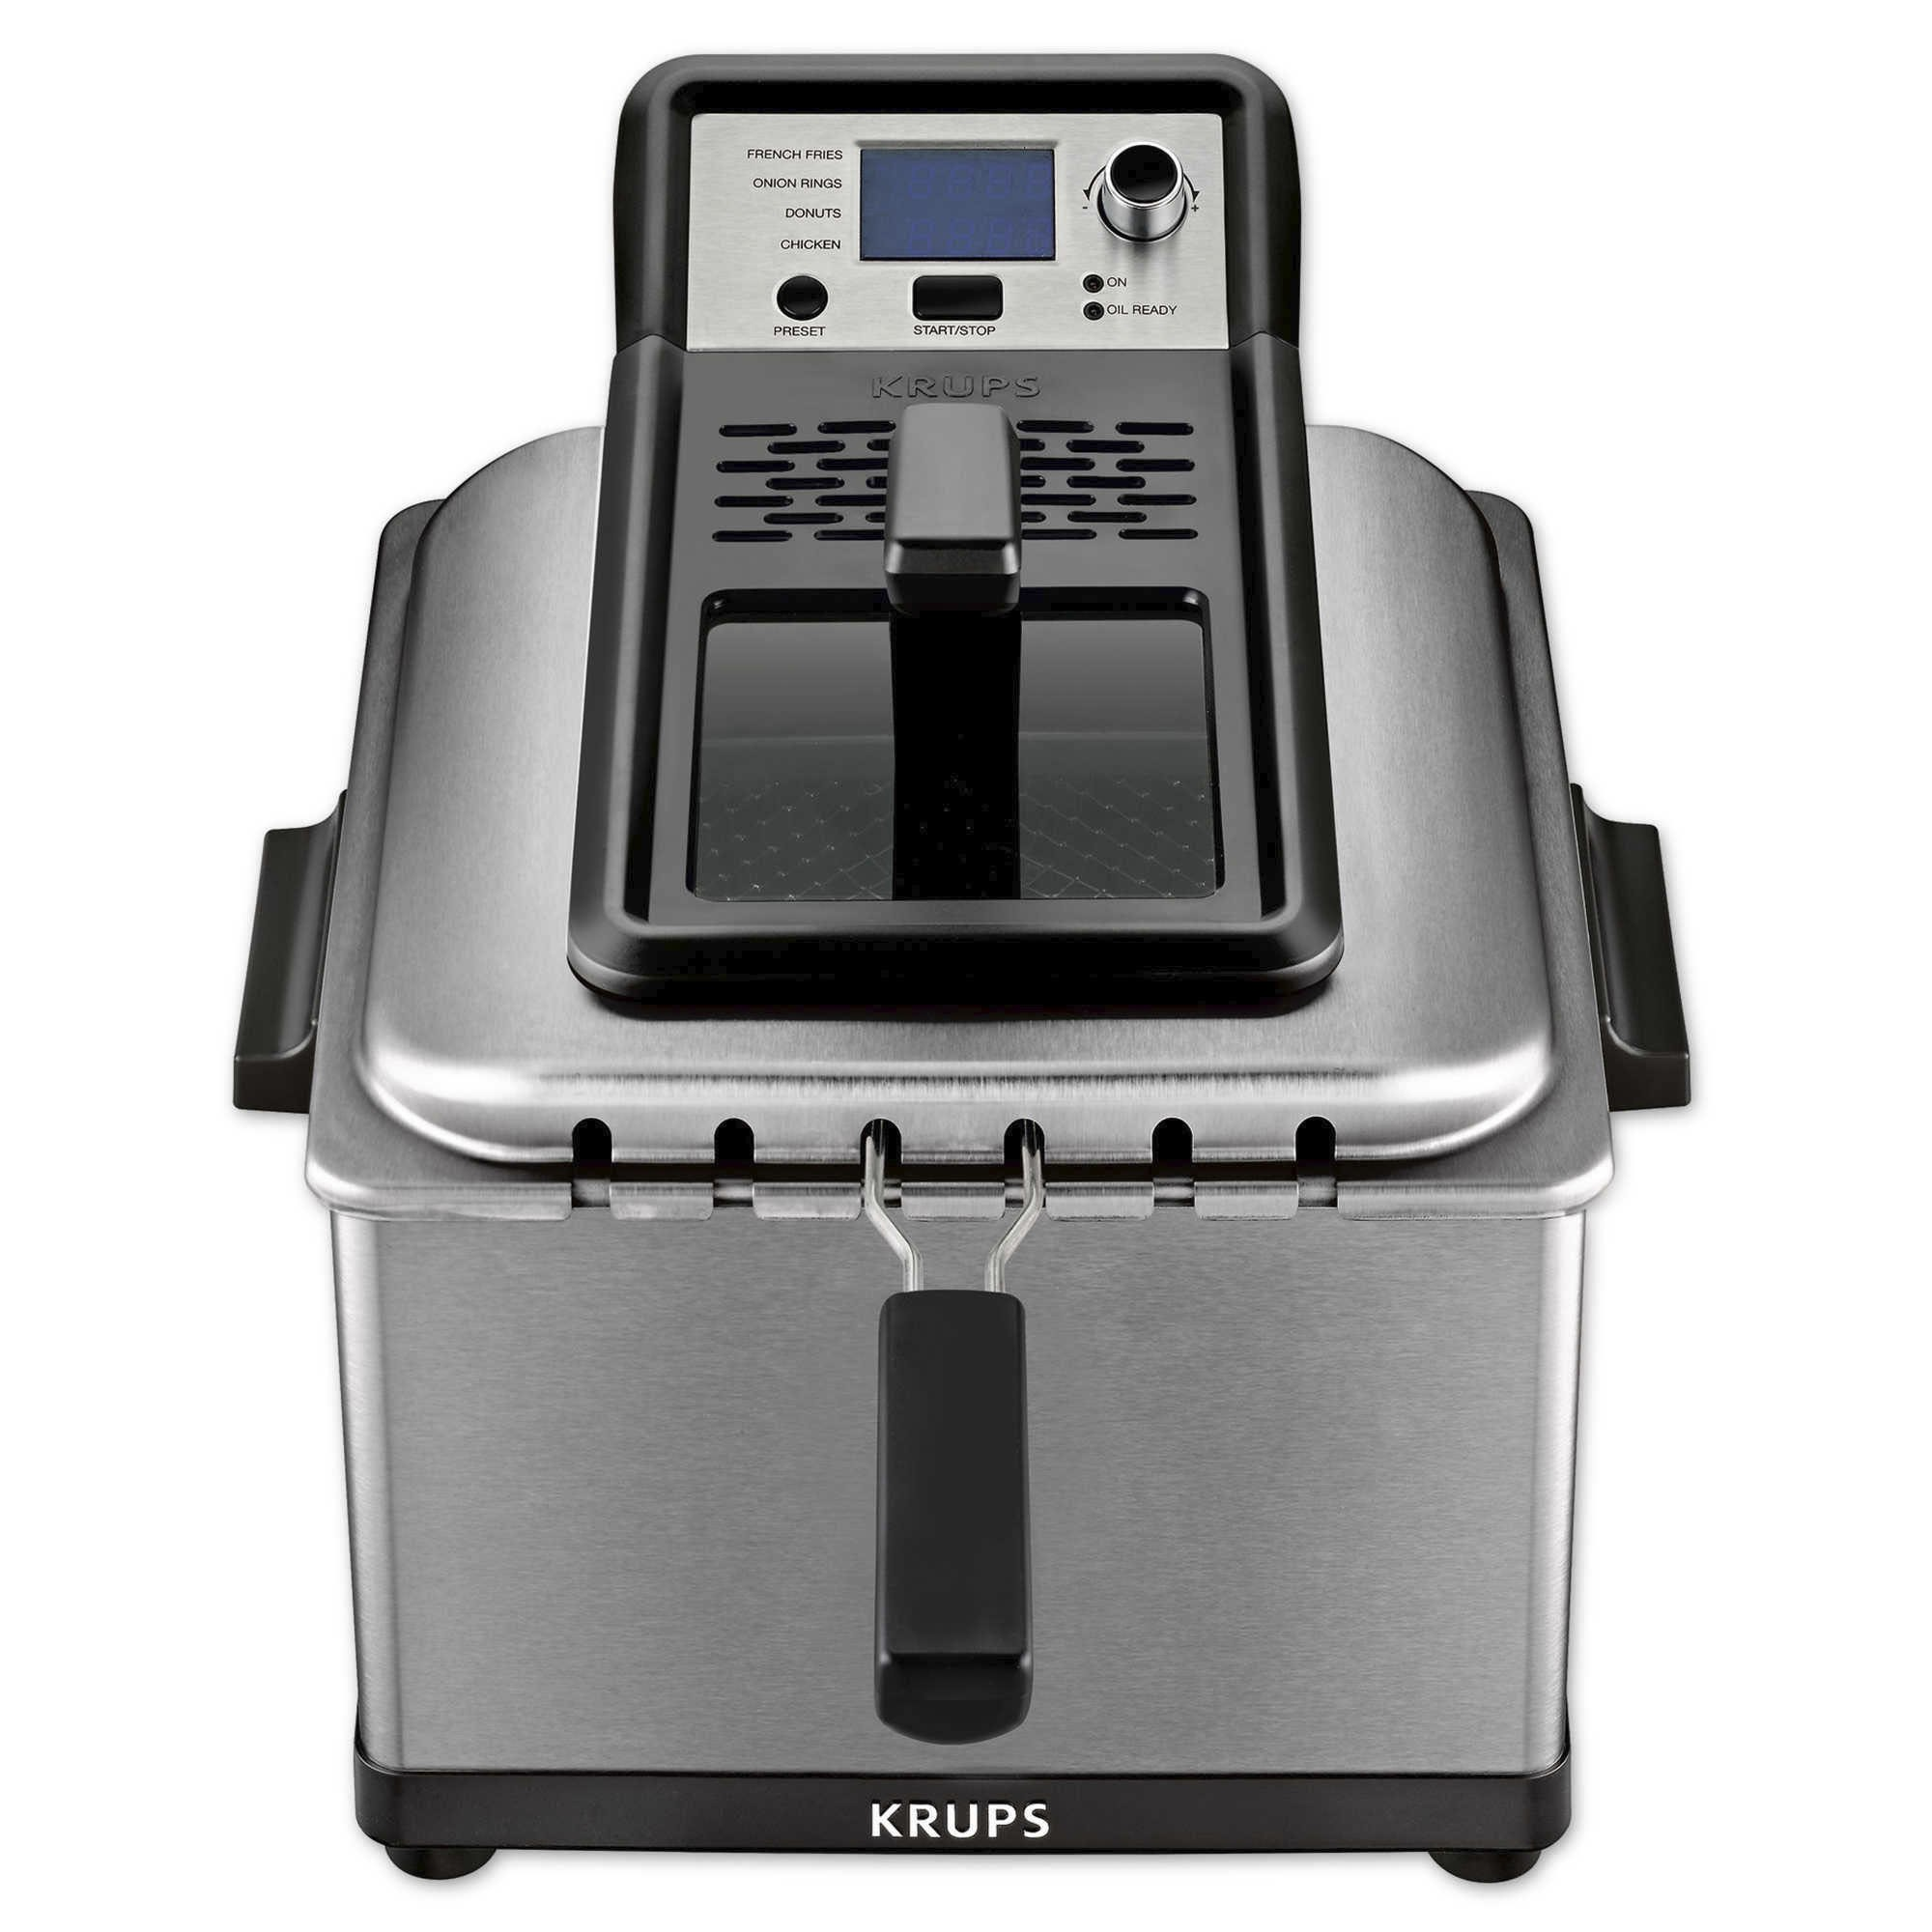 KRUPS Stainless Steel Professional Deep Fryer with 3 Frying Baskets, 1 Piece